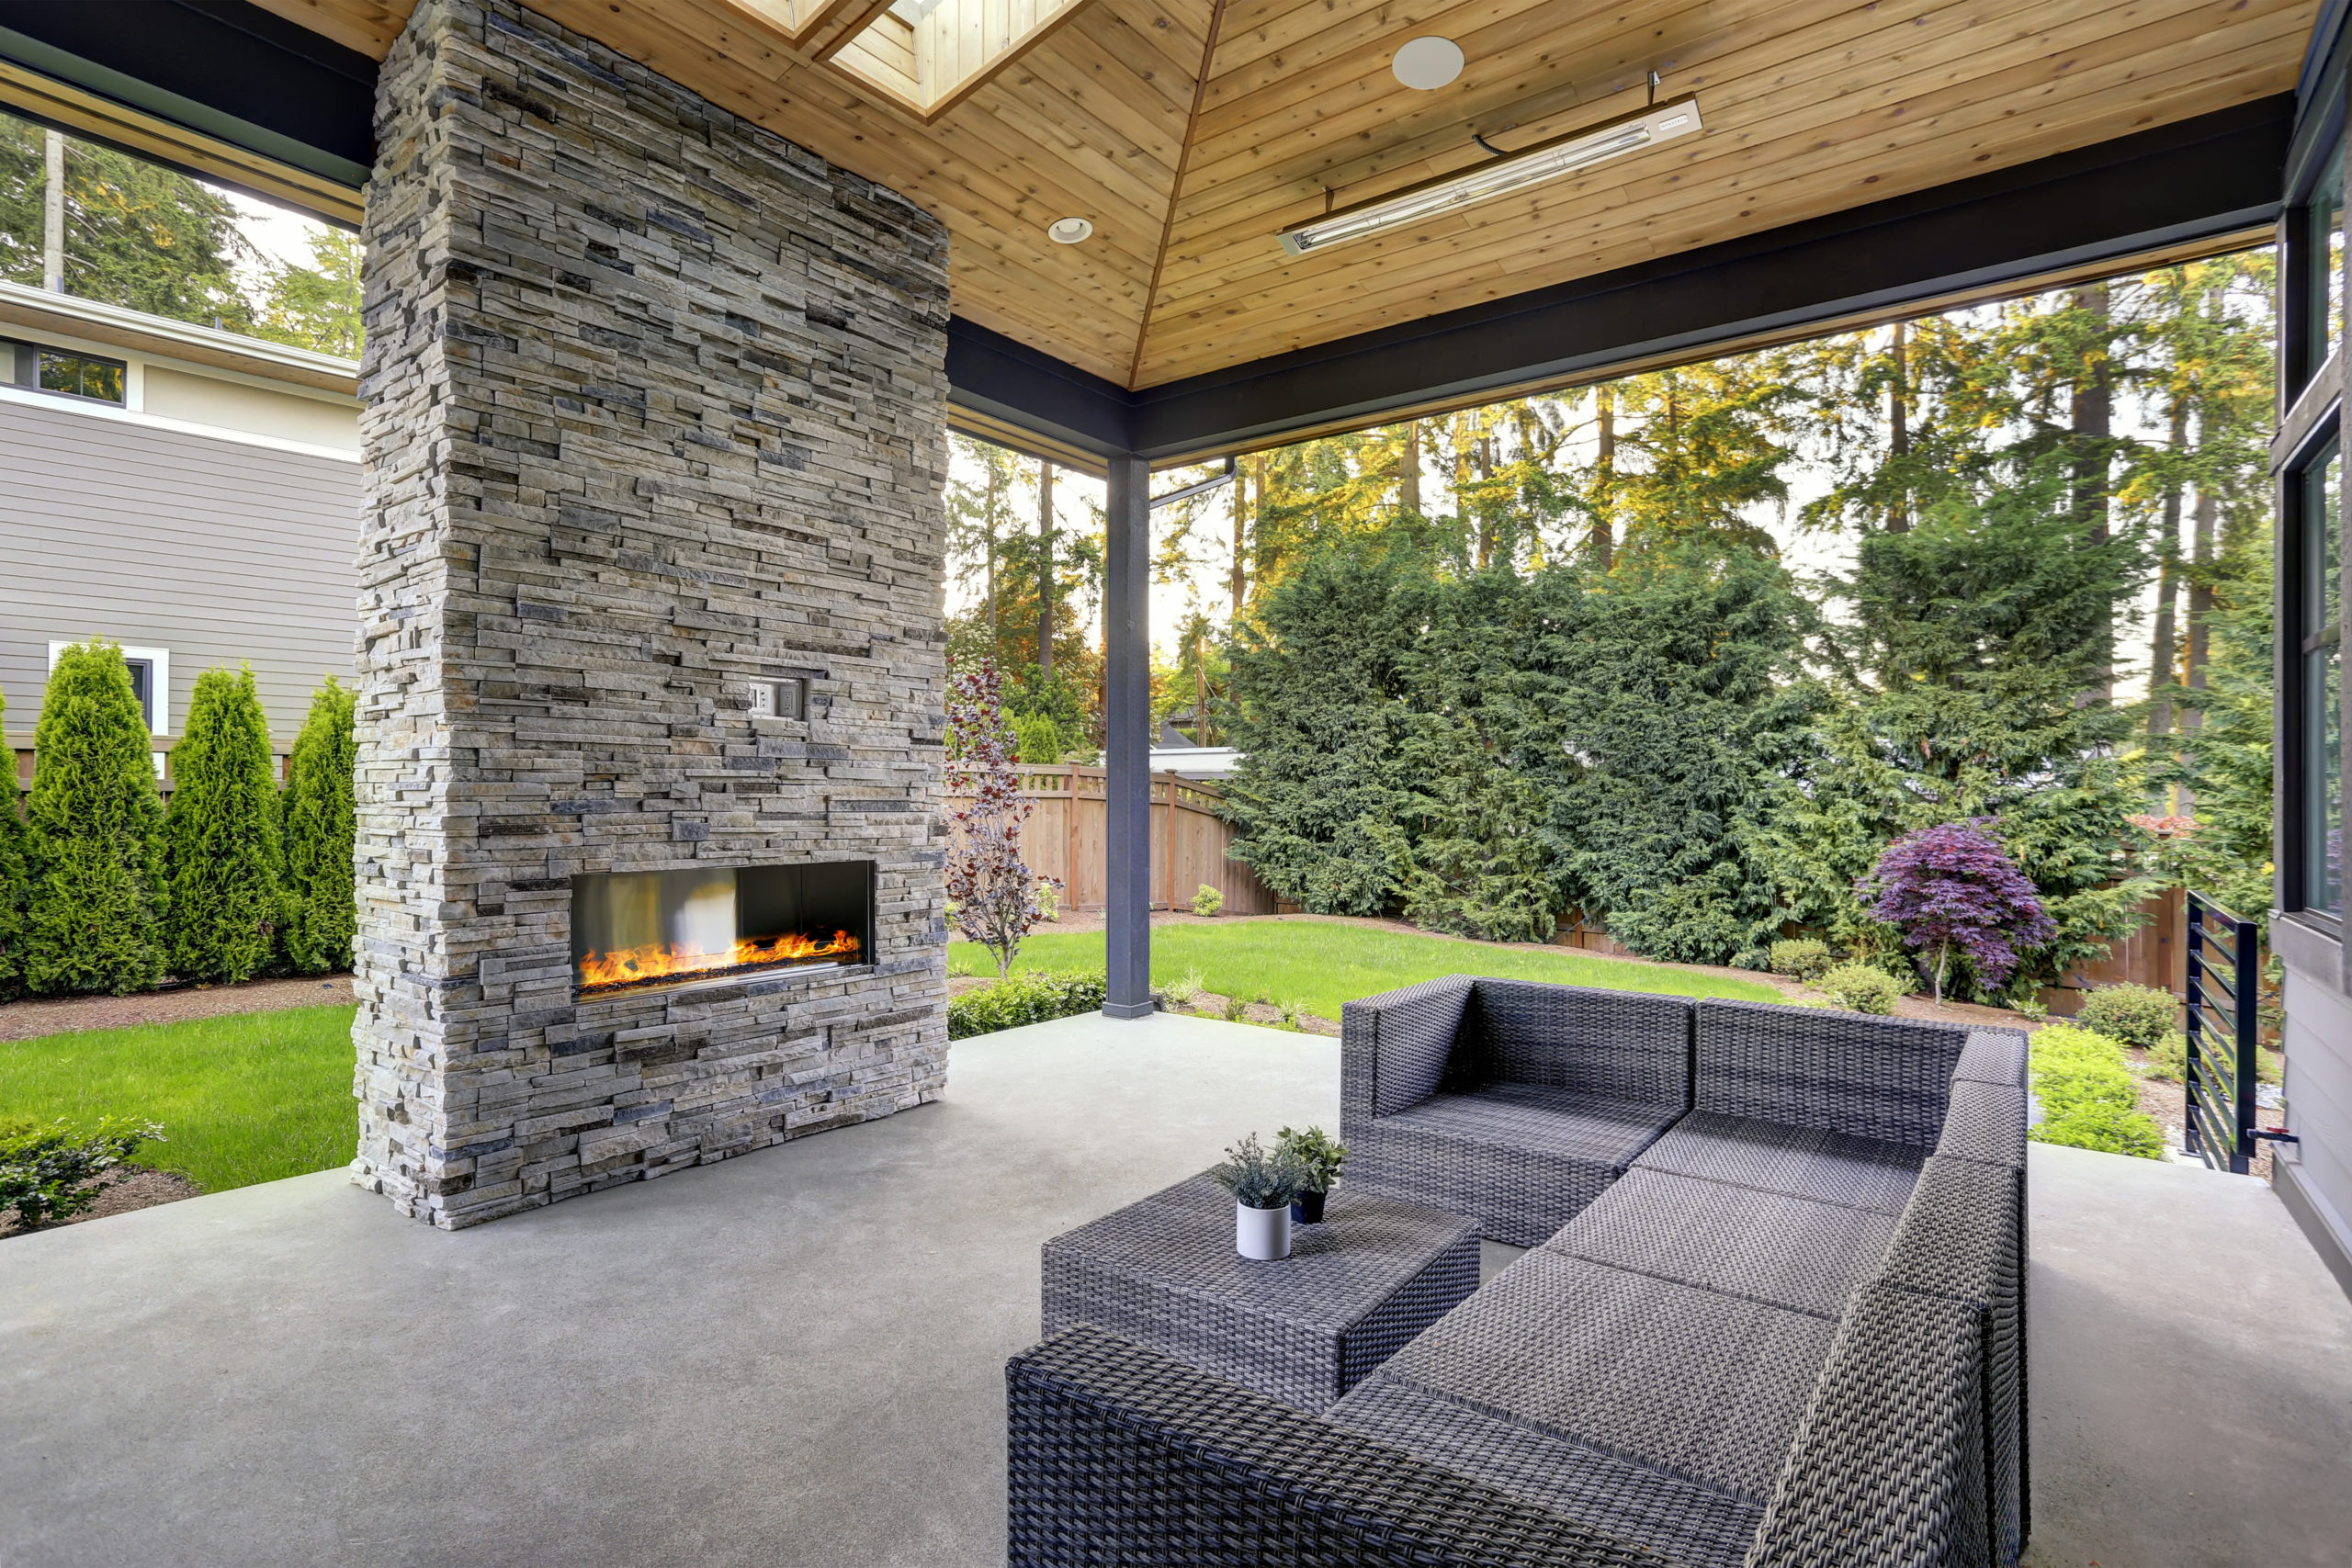 14 Fresh and Fun Patio Ideas You Need to Try This Summer on Backyard Patio Extension Ideas id=93818